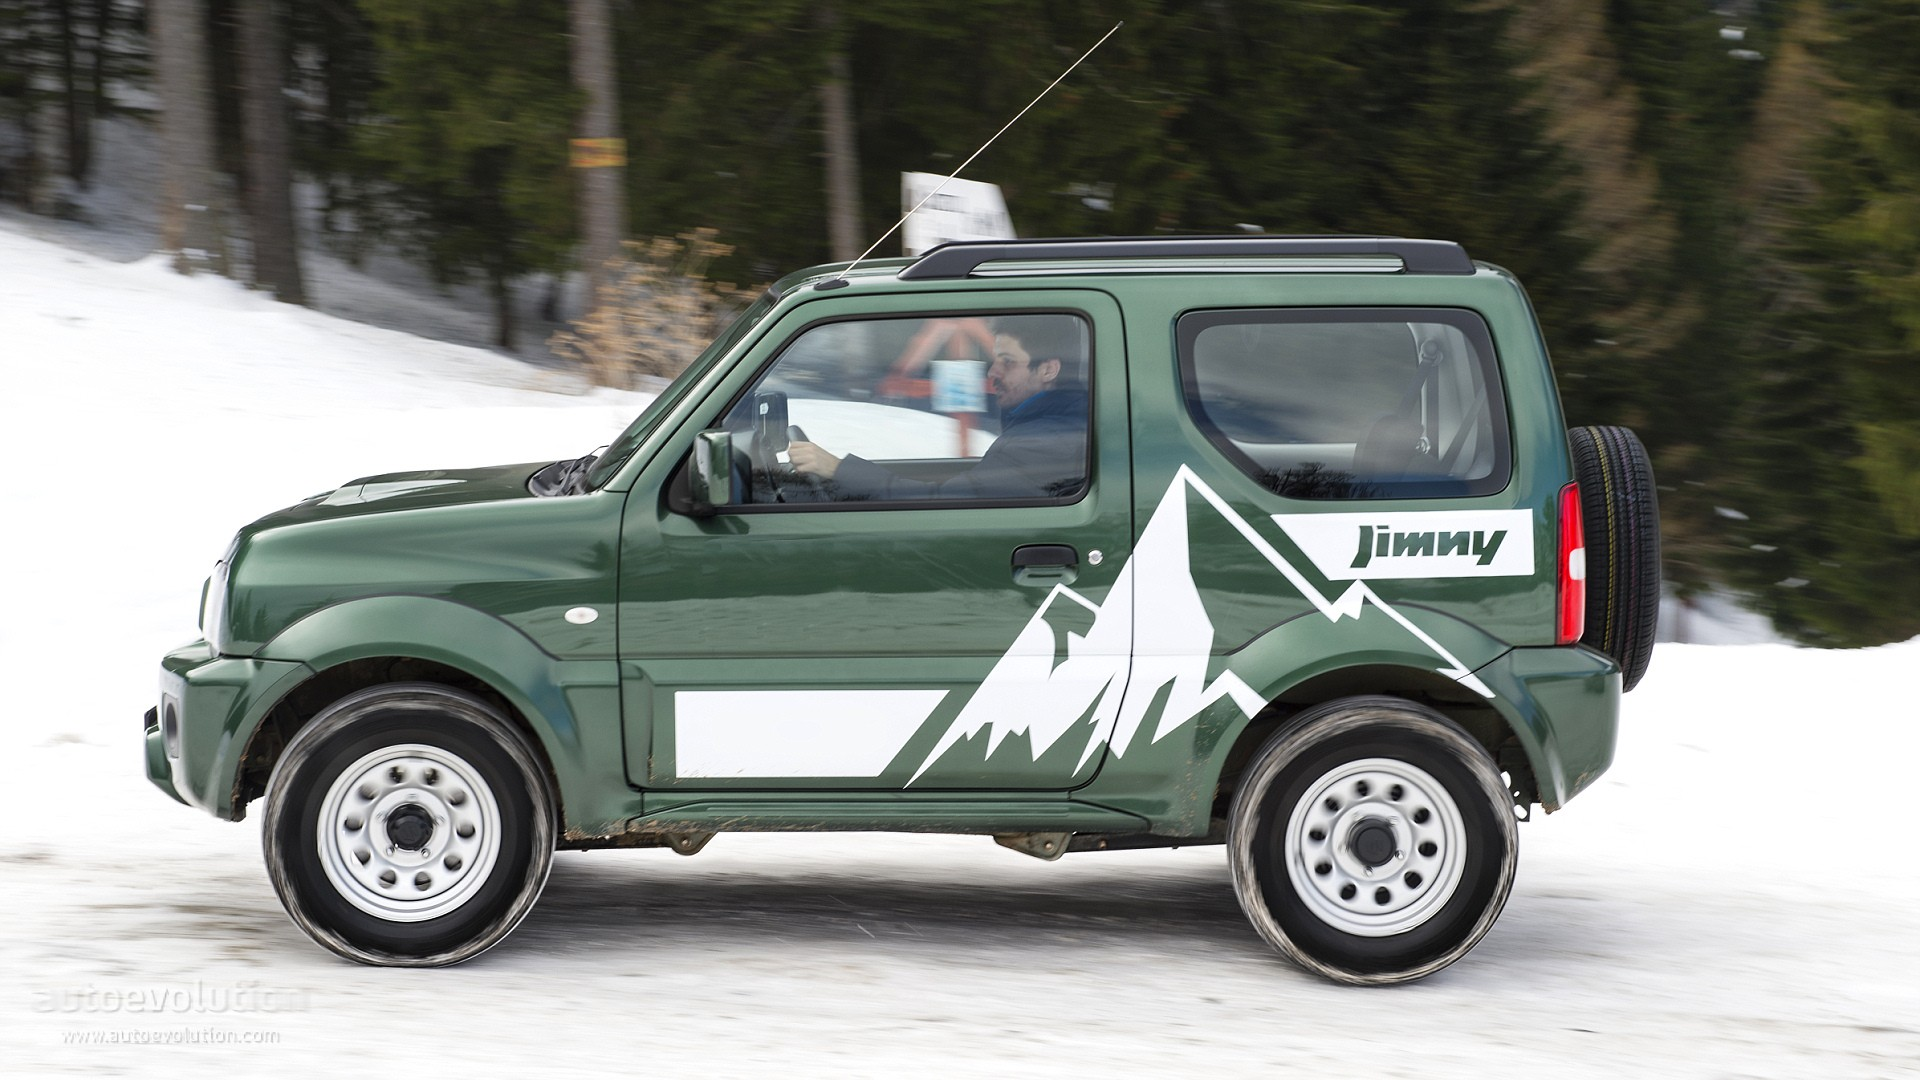 suzuki jimny review autoevolution. Black Bedroom Furniture Sets. Home Design Ideas